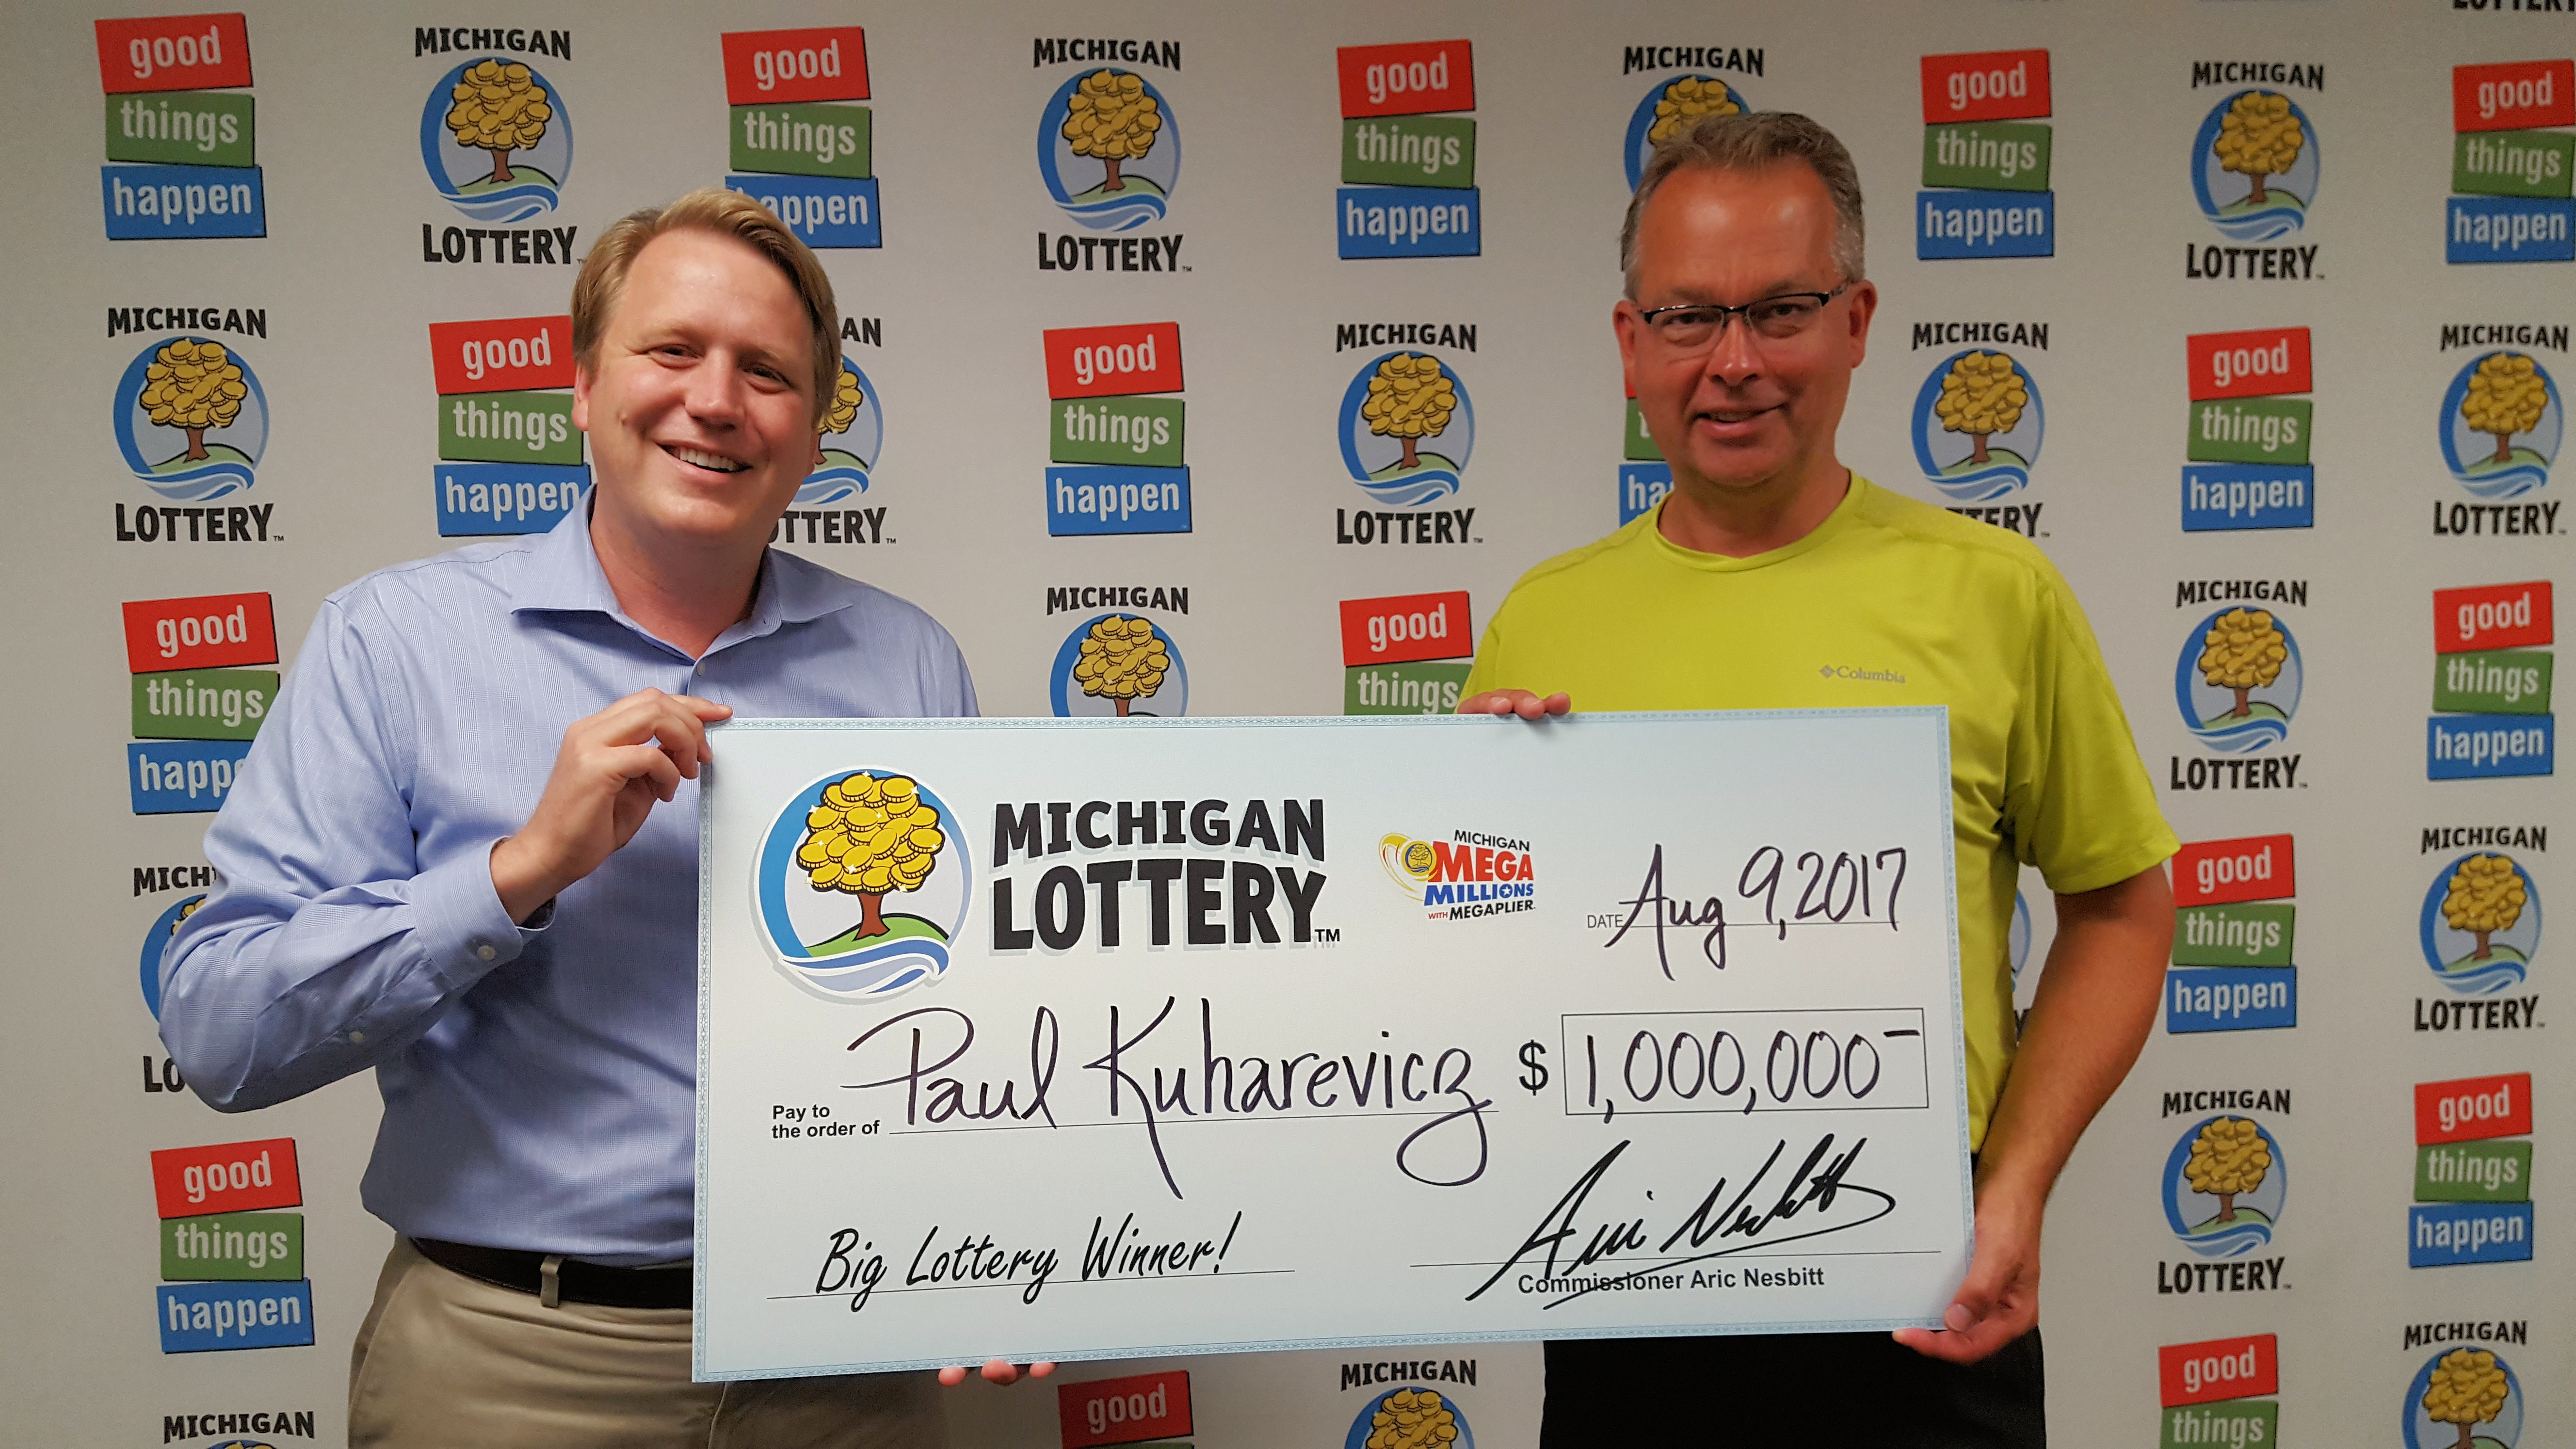 Canceled Flight Led Michigan Man To Purchase Winning Lotto Ticket Upi Com